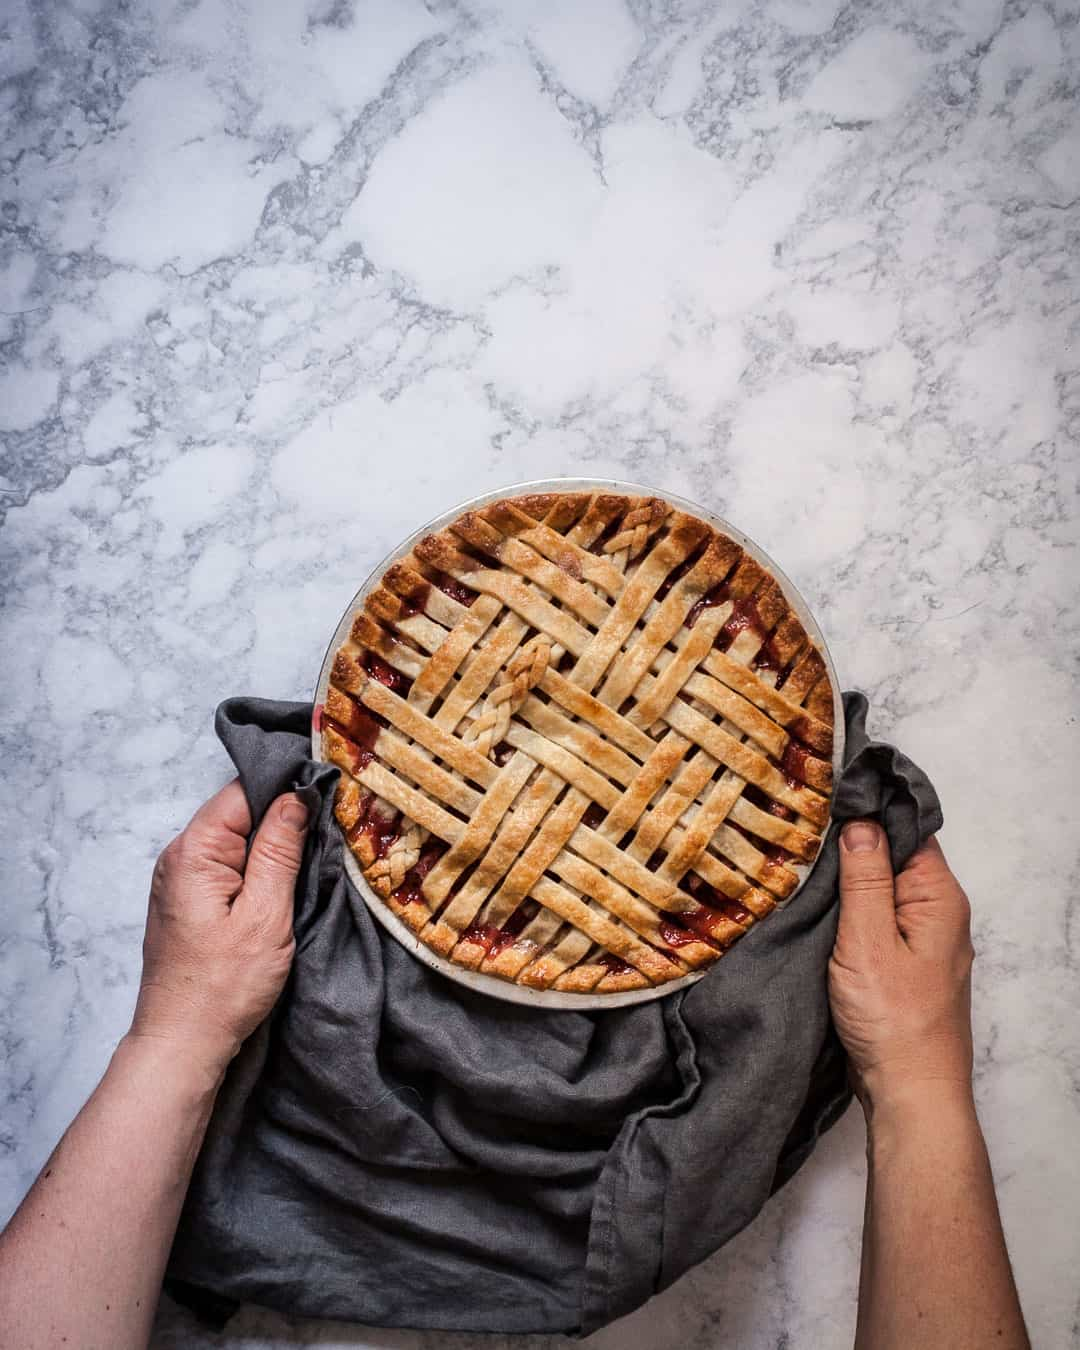 Marble surface with hands holding a baked lattice pie in a grey linen towel